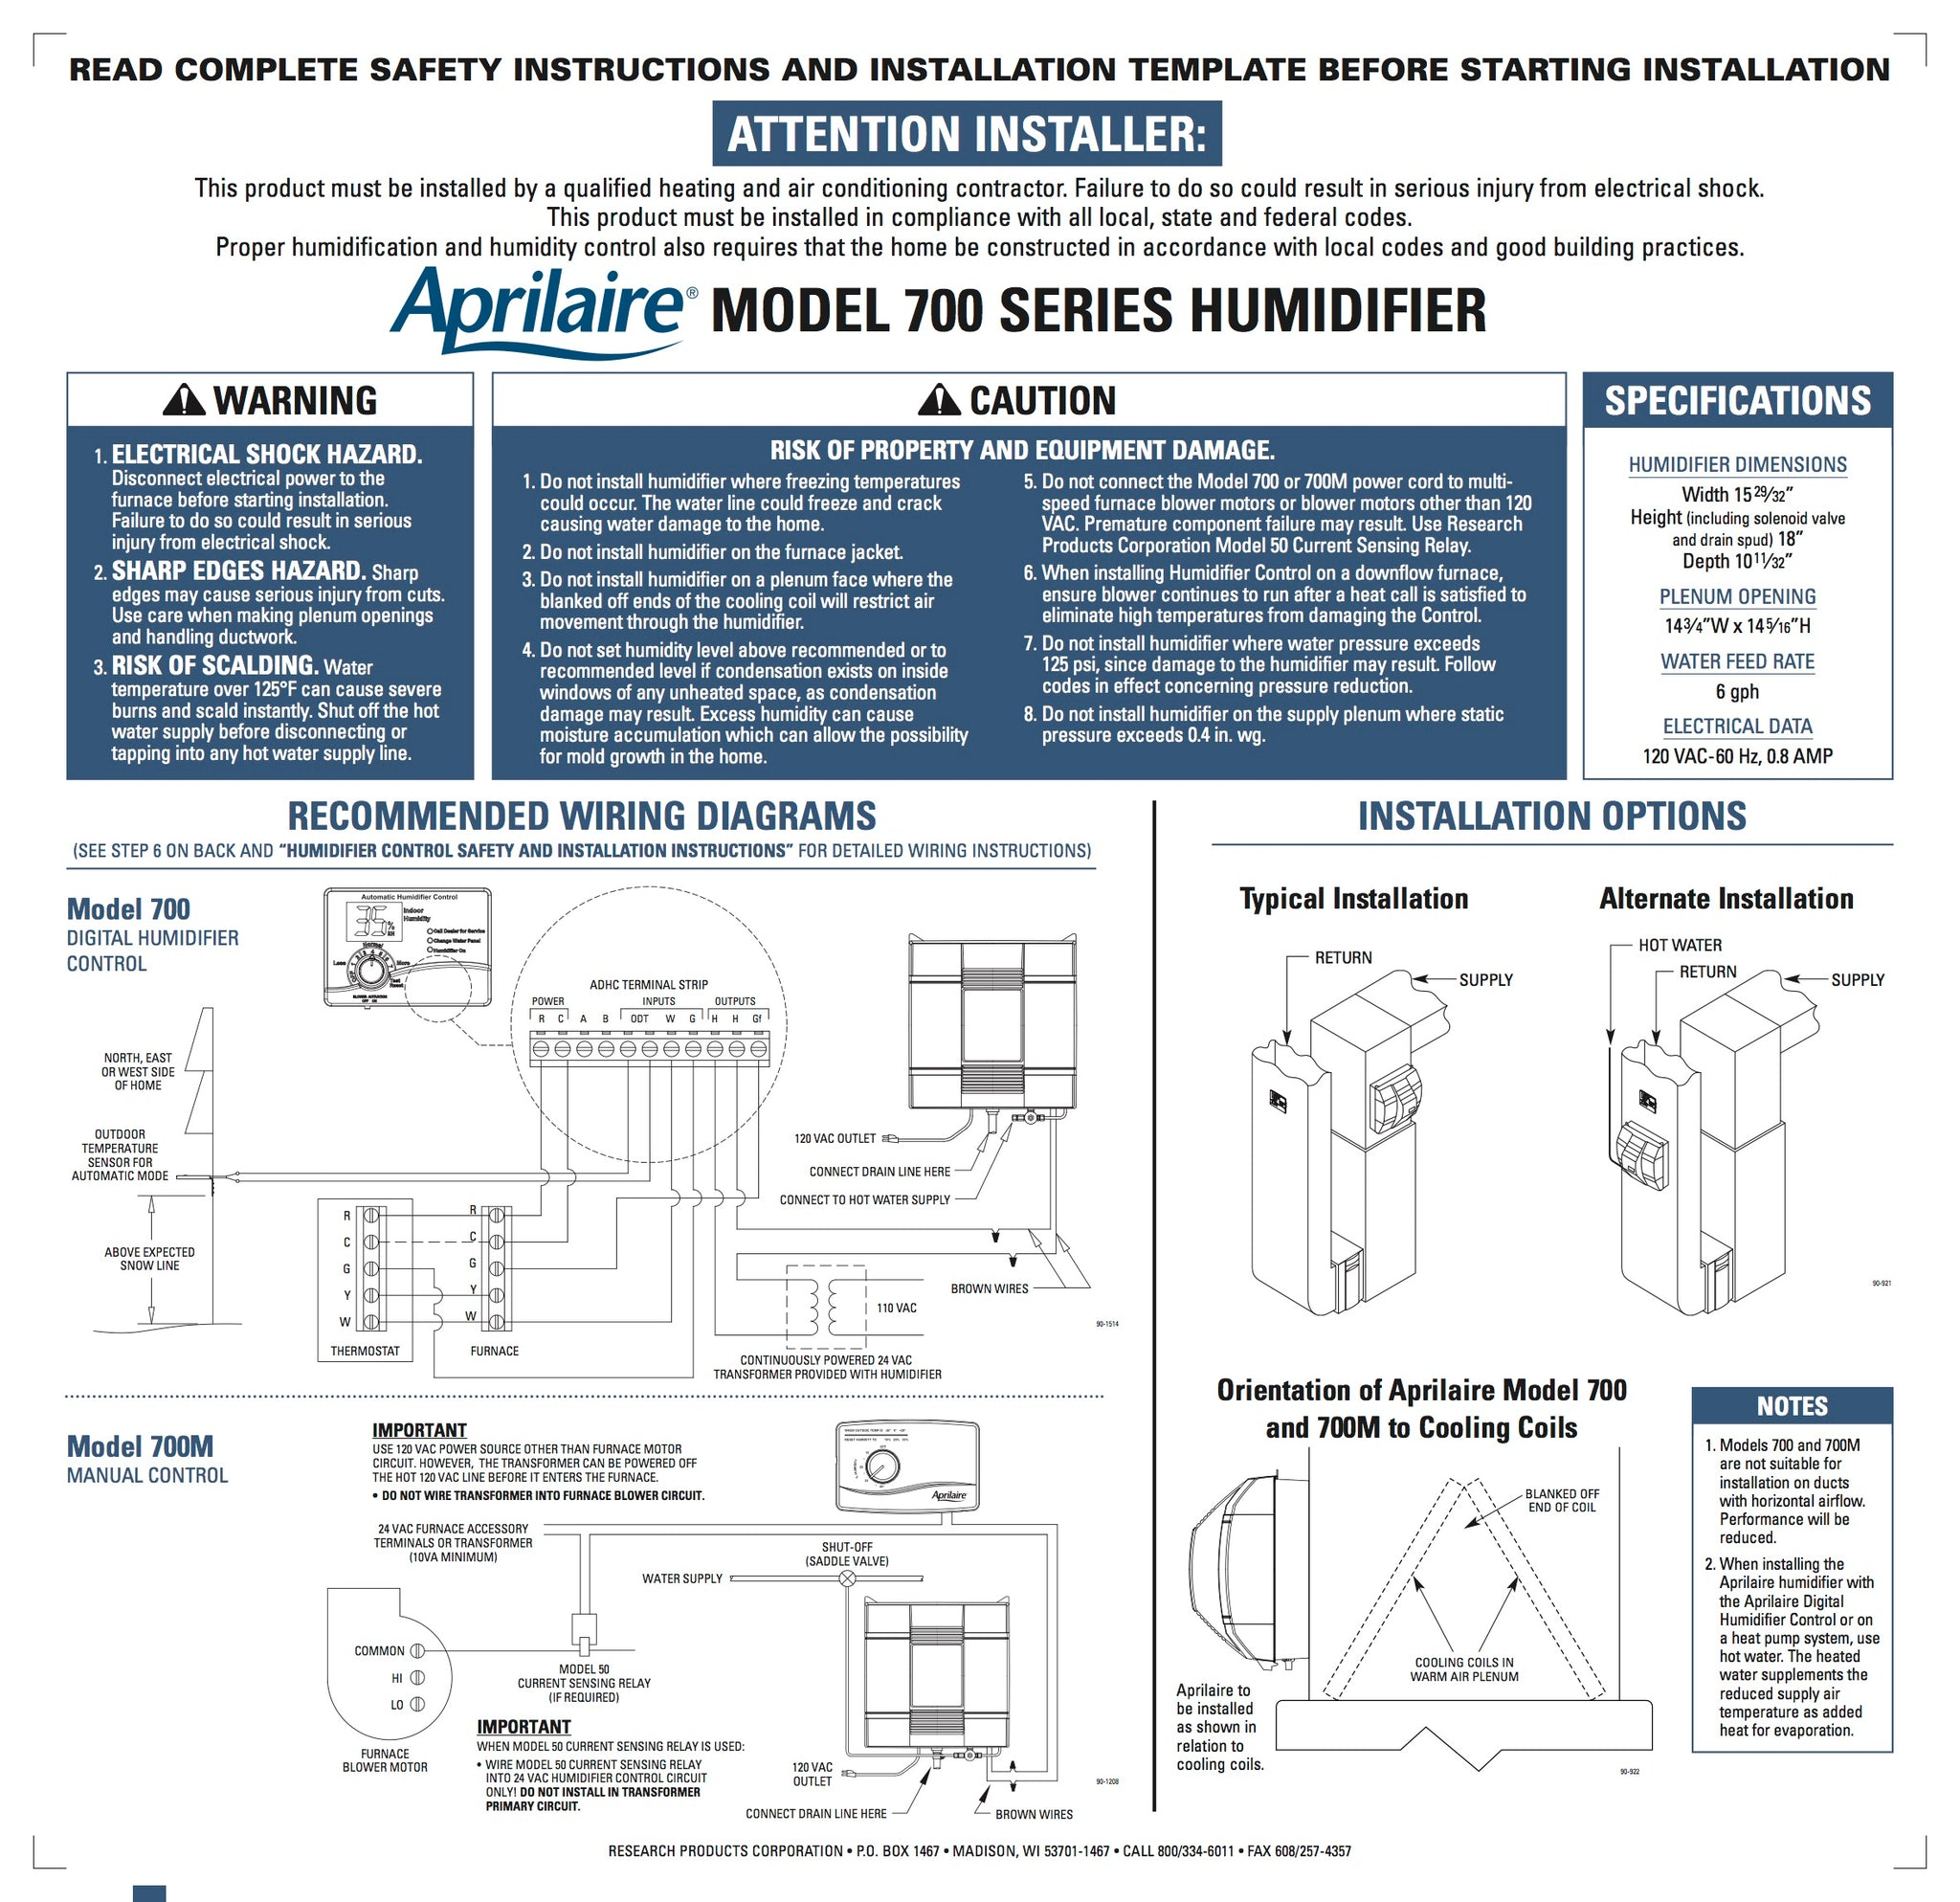 Aprilaire_700_Humidifier_Instructions_Page_1_2048x2048?v=1474913304 aprilaire 700 series installation guide rocketiaq com aprilaire 700 humidifier wiring diagram at metegol.co